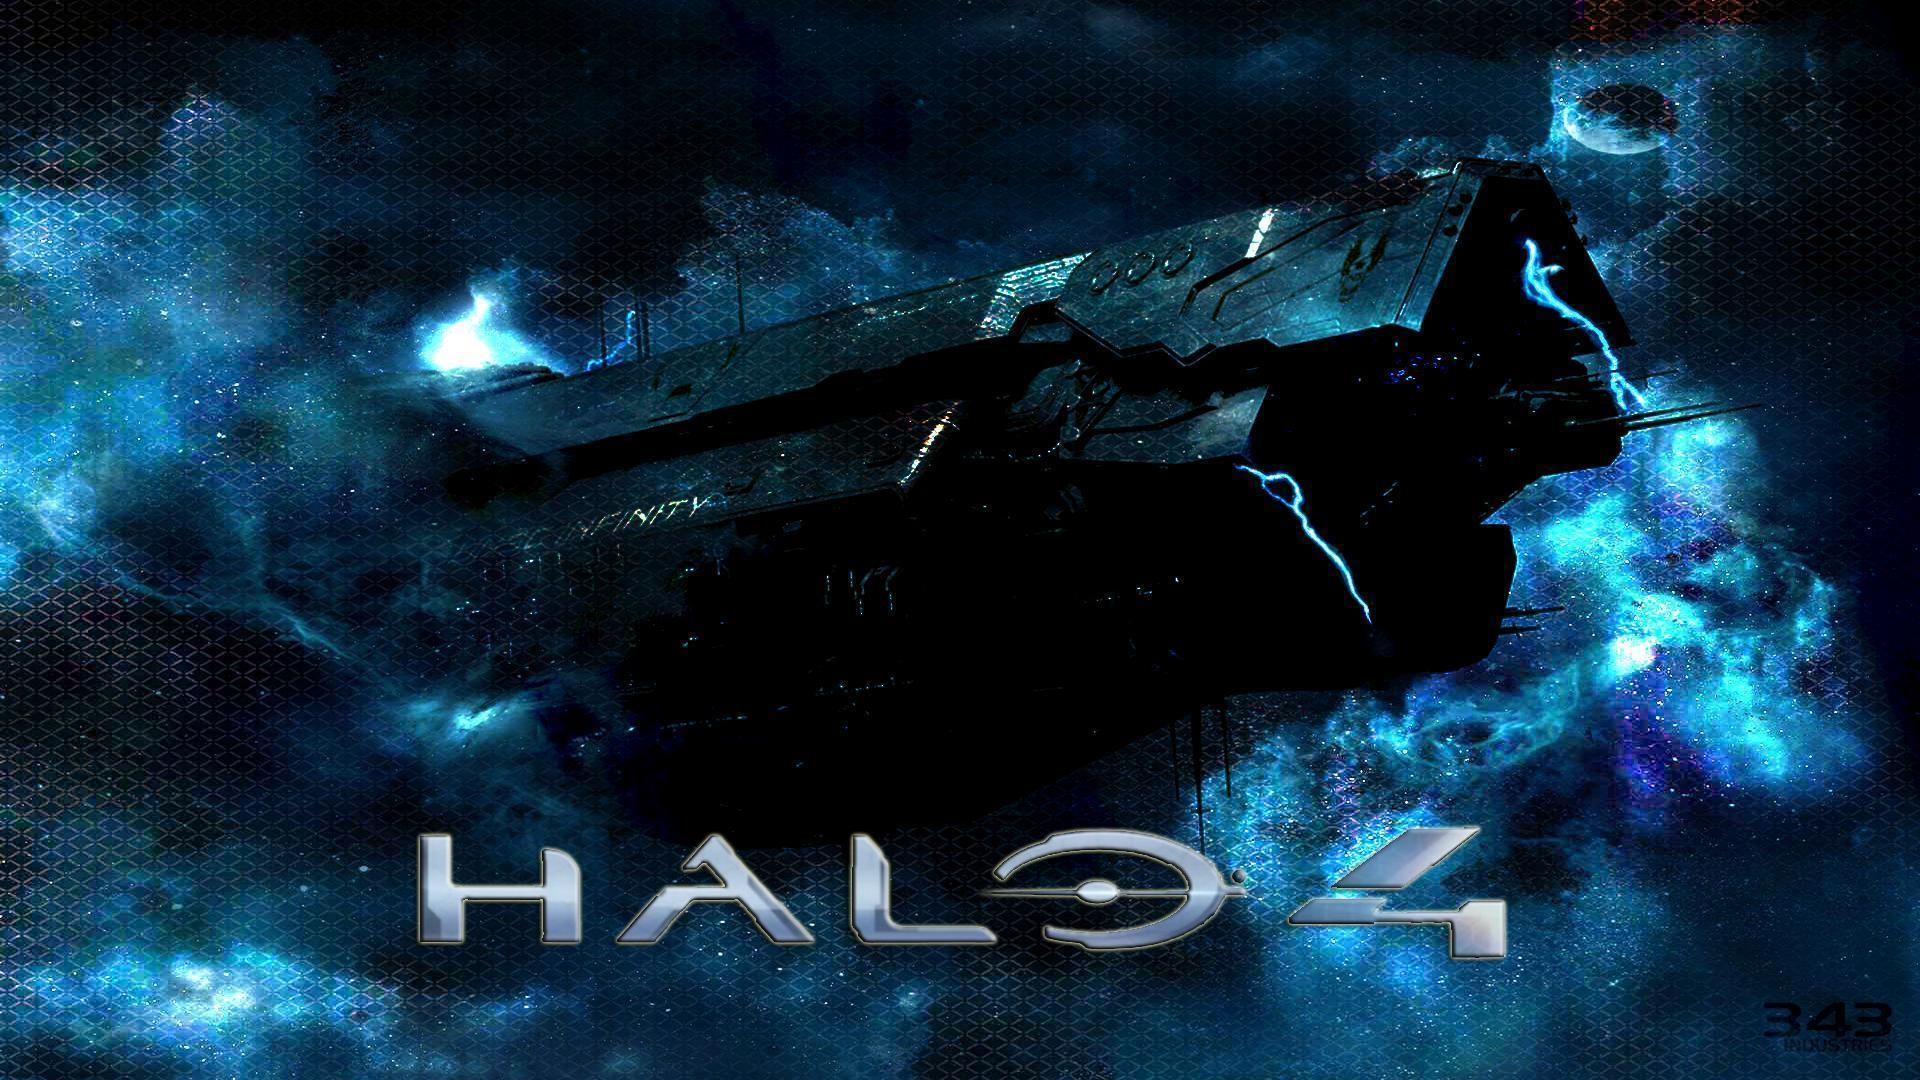 halo unsc wallpaper phone - photo #31